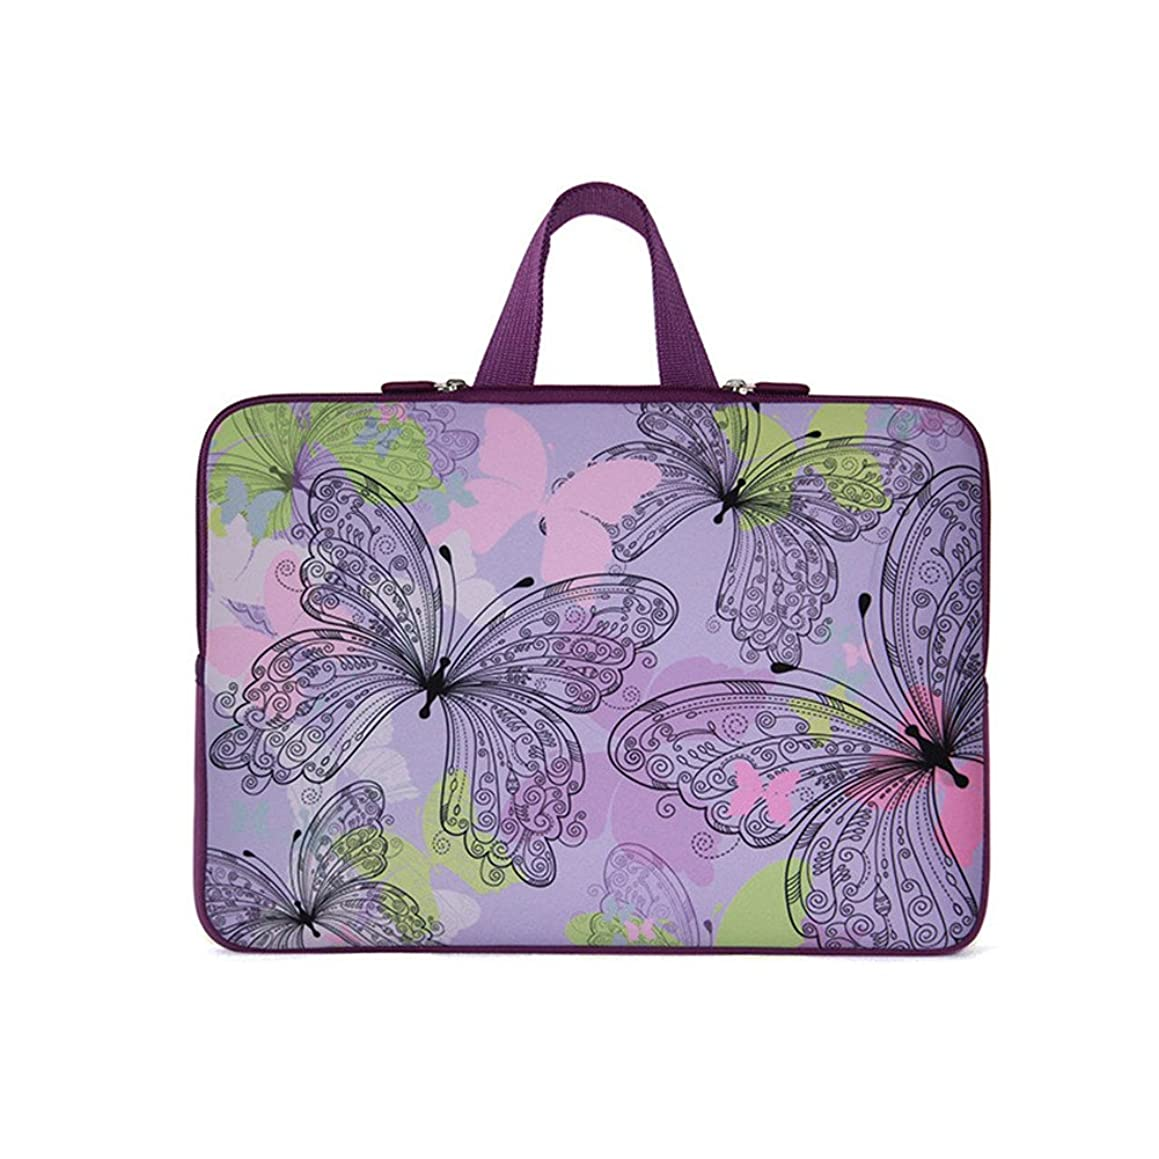 Fashion Ultra-light Waterproof Anti-Shock Neoprene Unique style 9.7 10.1 10.6 inch Netbook/ipad/iPad air/Laptop/Computer Briefcase Pouch Sleeve bag Carrying Case Cover Tote Handle bags(Butterfly)